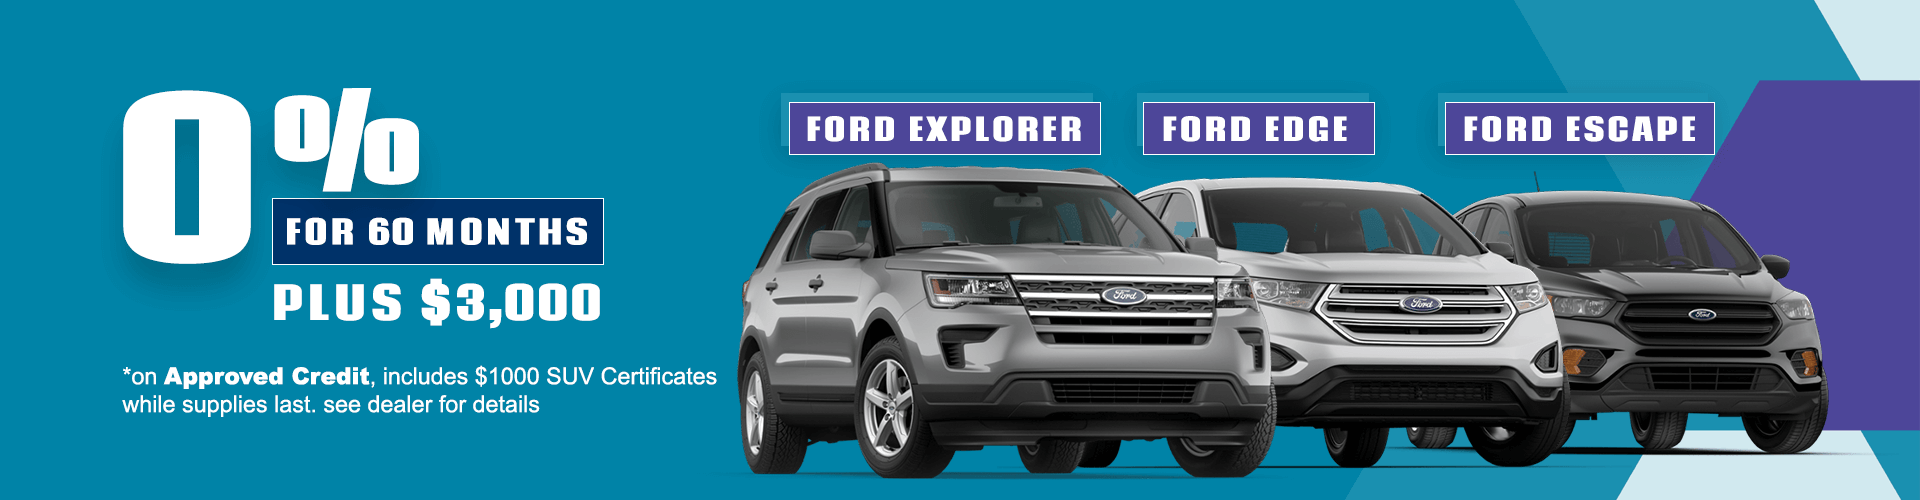 Special offer on 2018 Ford Escape 2018 Ford Explorers, Ford Edges, and Ford Escapes